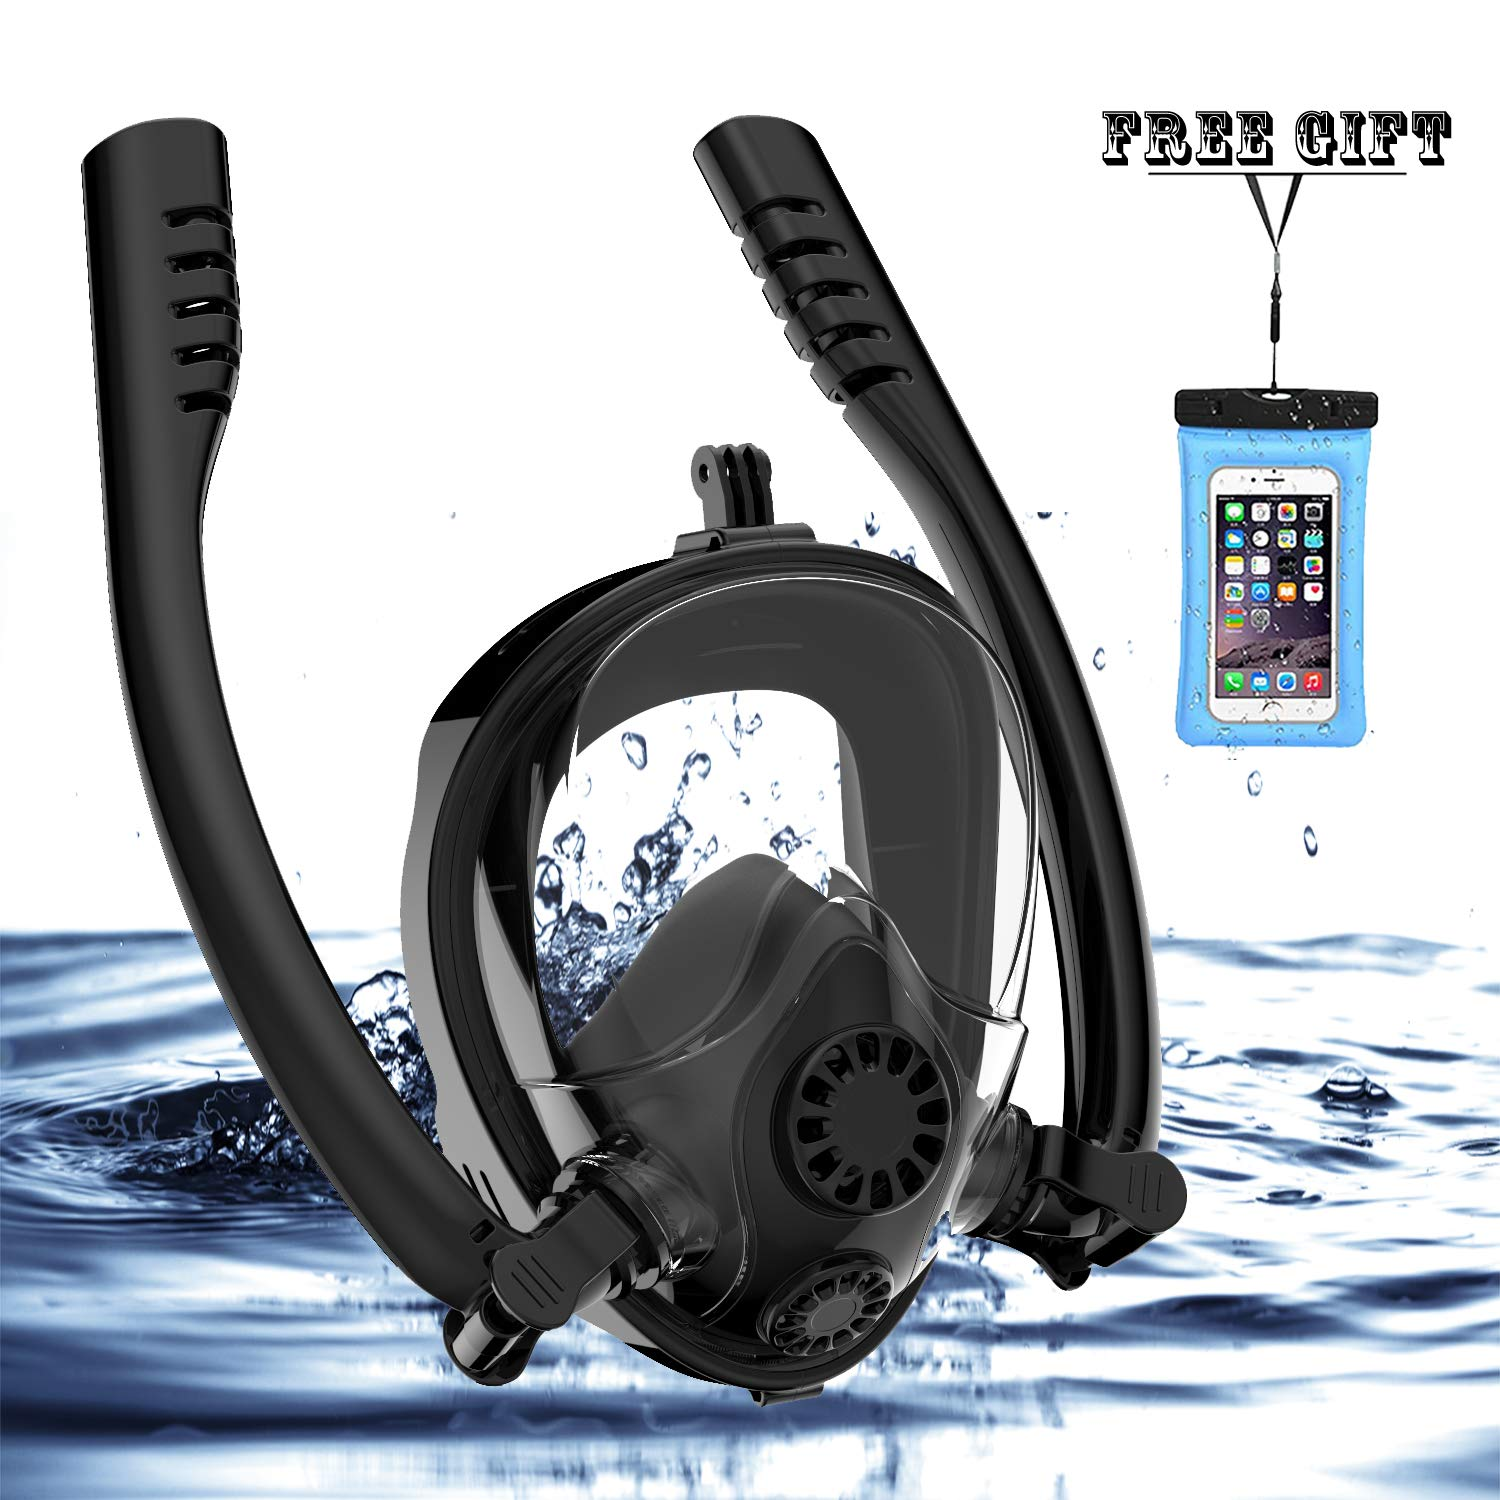 Full Face Snorkel Mask, HJKB K2 Backstroke Swiming Snorkeling Mask with Double Tubes and 180° Panoramic Viewing, Zero Fog and Anti Leak Guarantee with Camera Mount for Adult (Black, Large) by Jahuite (Image #1)